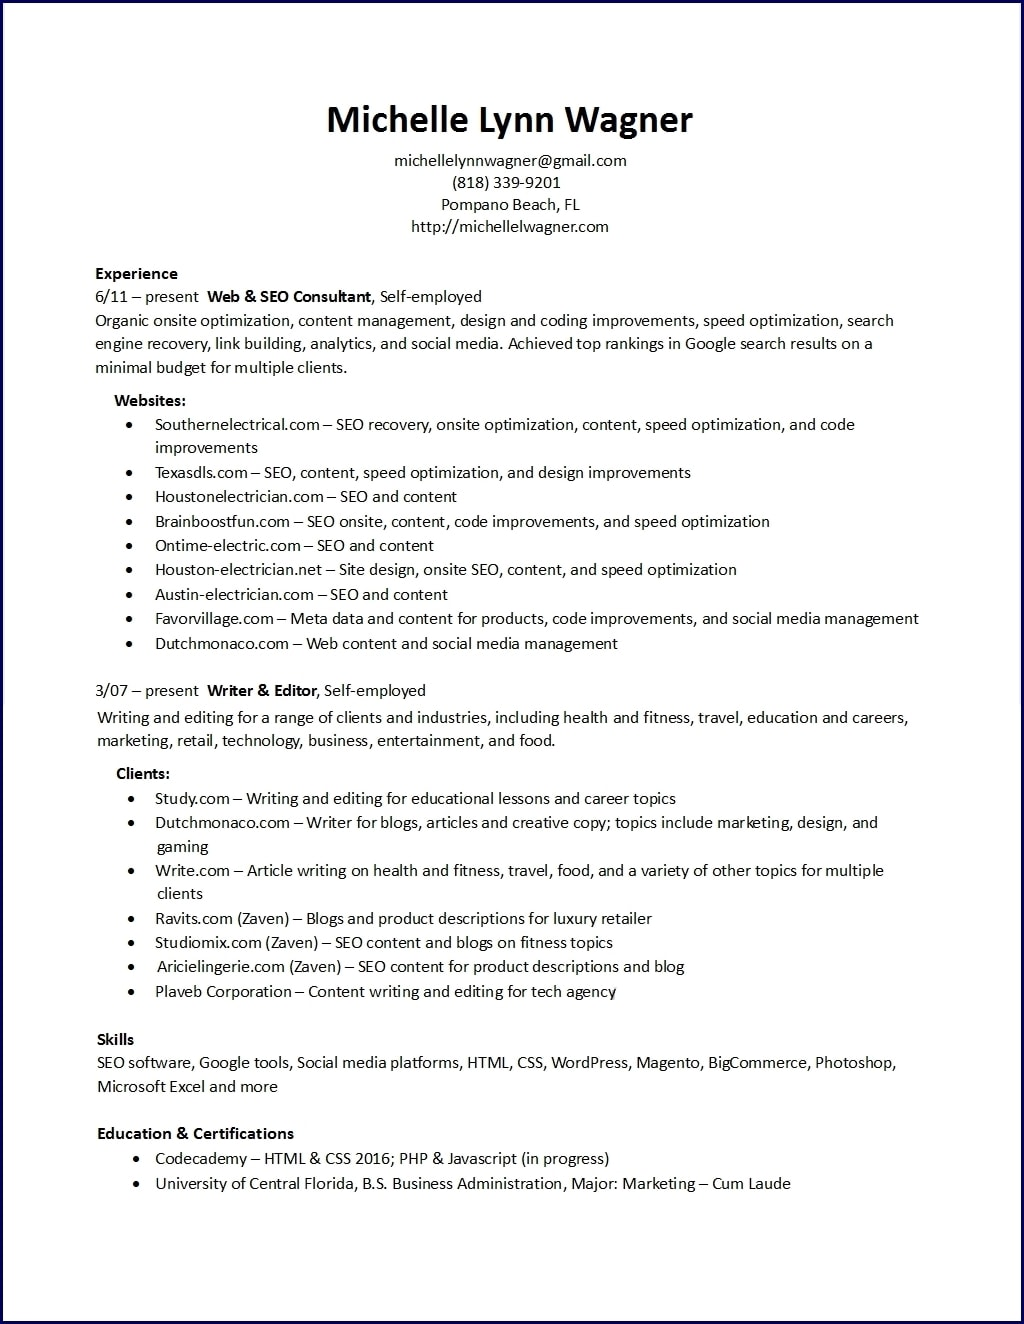 Resume – Michelle L. Wagner, Marketing Specialist